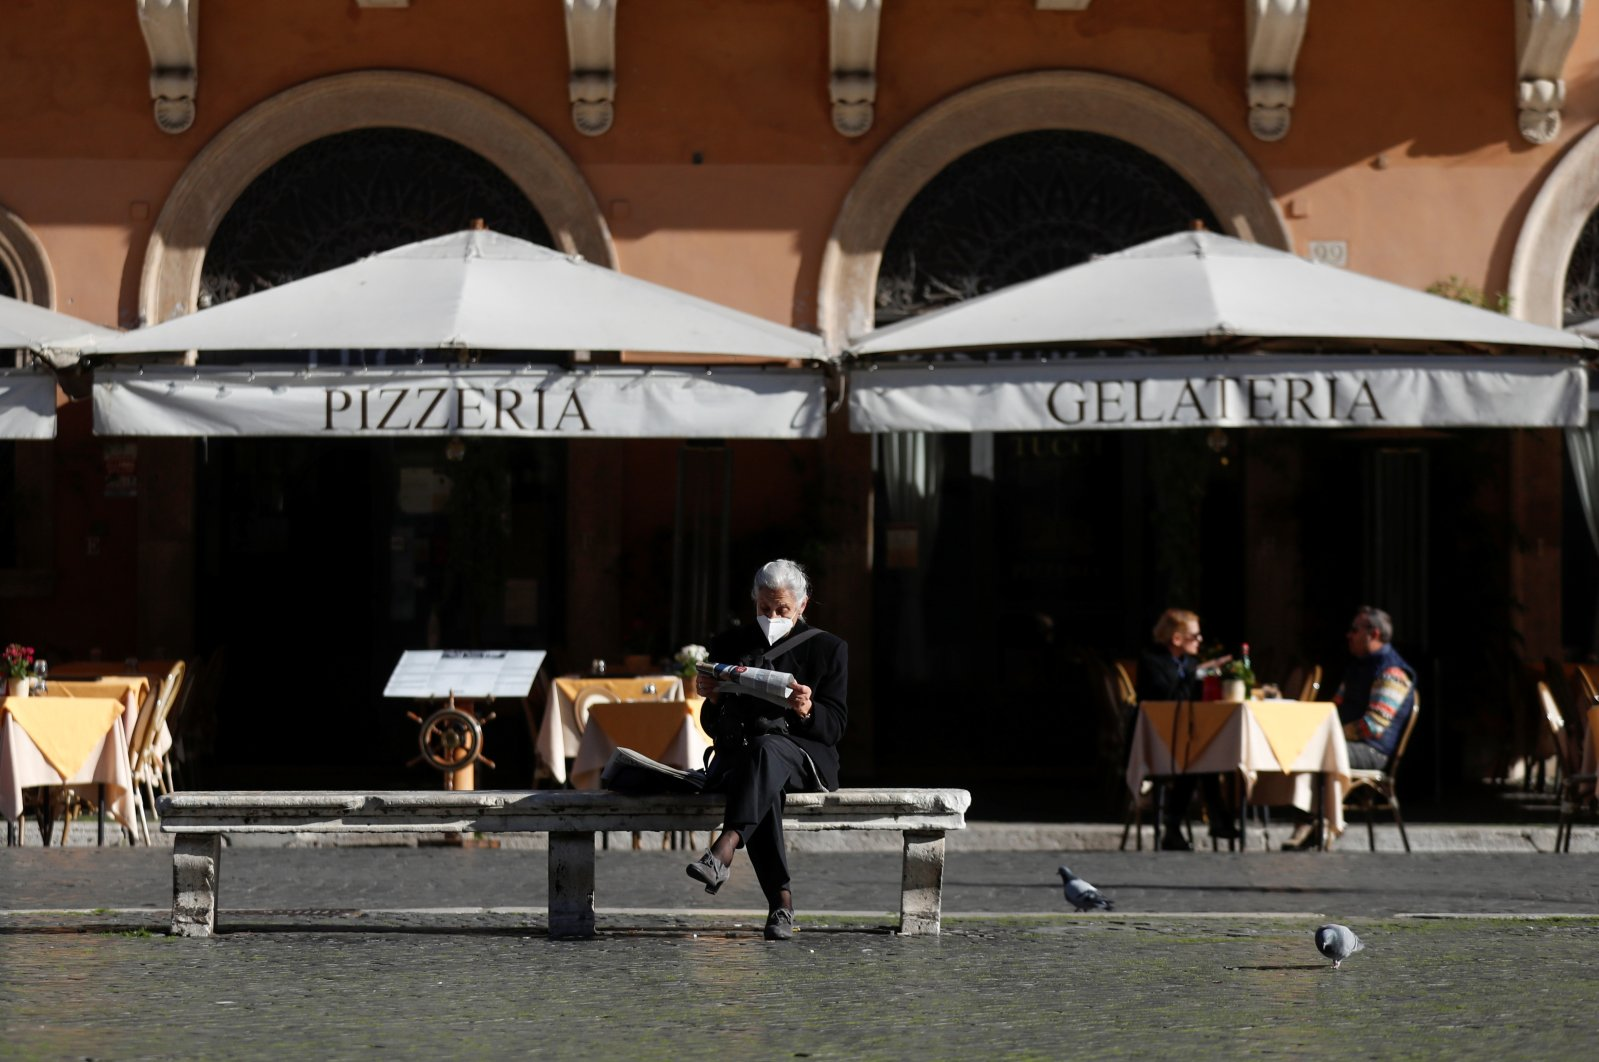 A woman sits on a bench reading a newspaper in Piazza Navona square, Rome, Italy, Nov. 23, 2020. (REUTERS Photo)